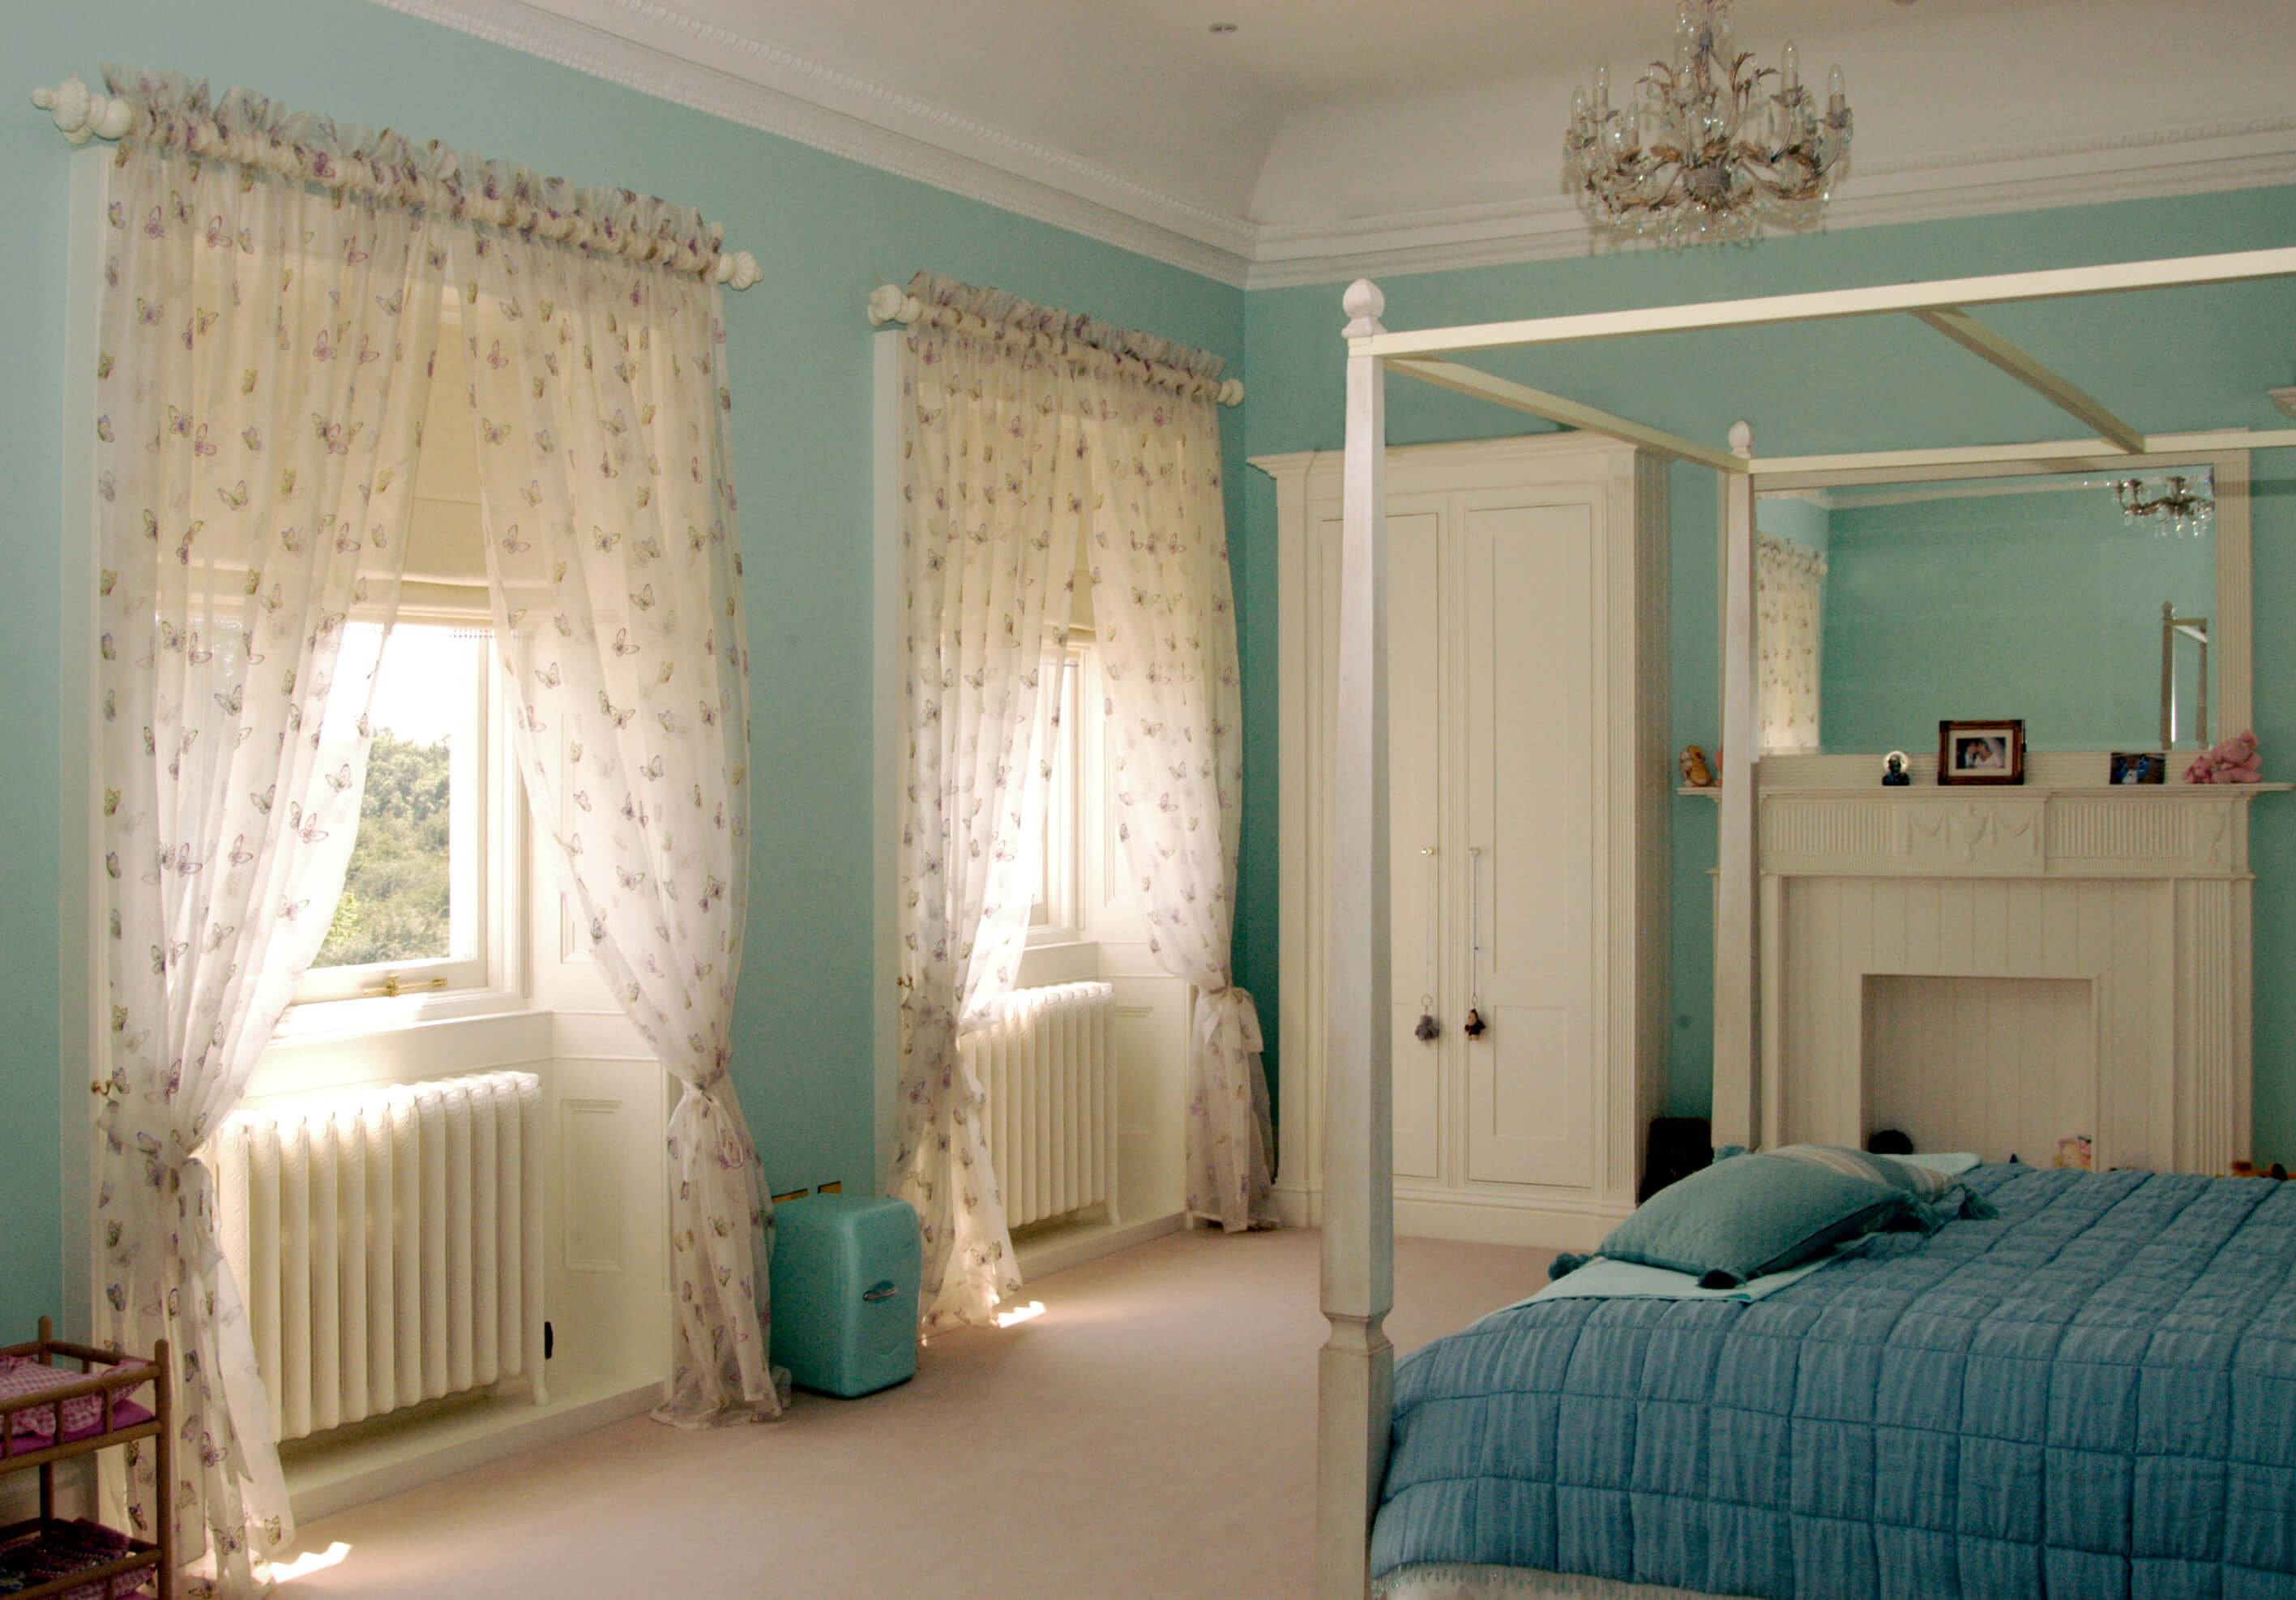 Patterned bedroom sheer curtains